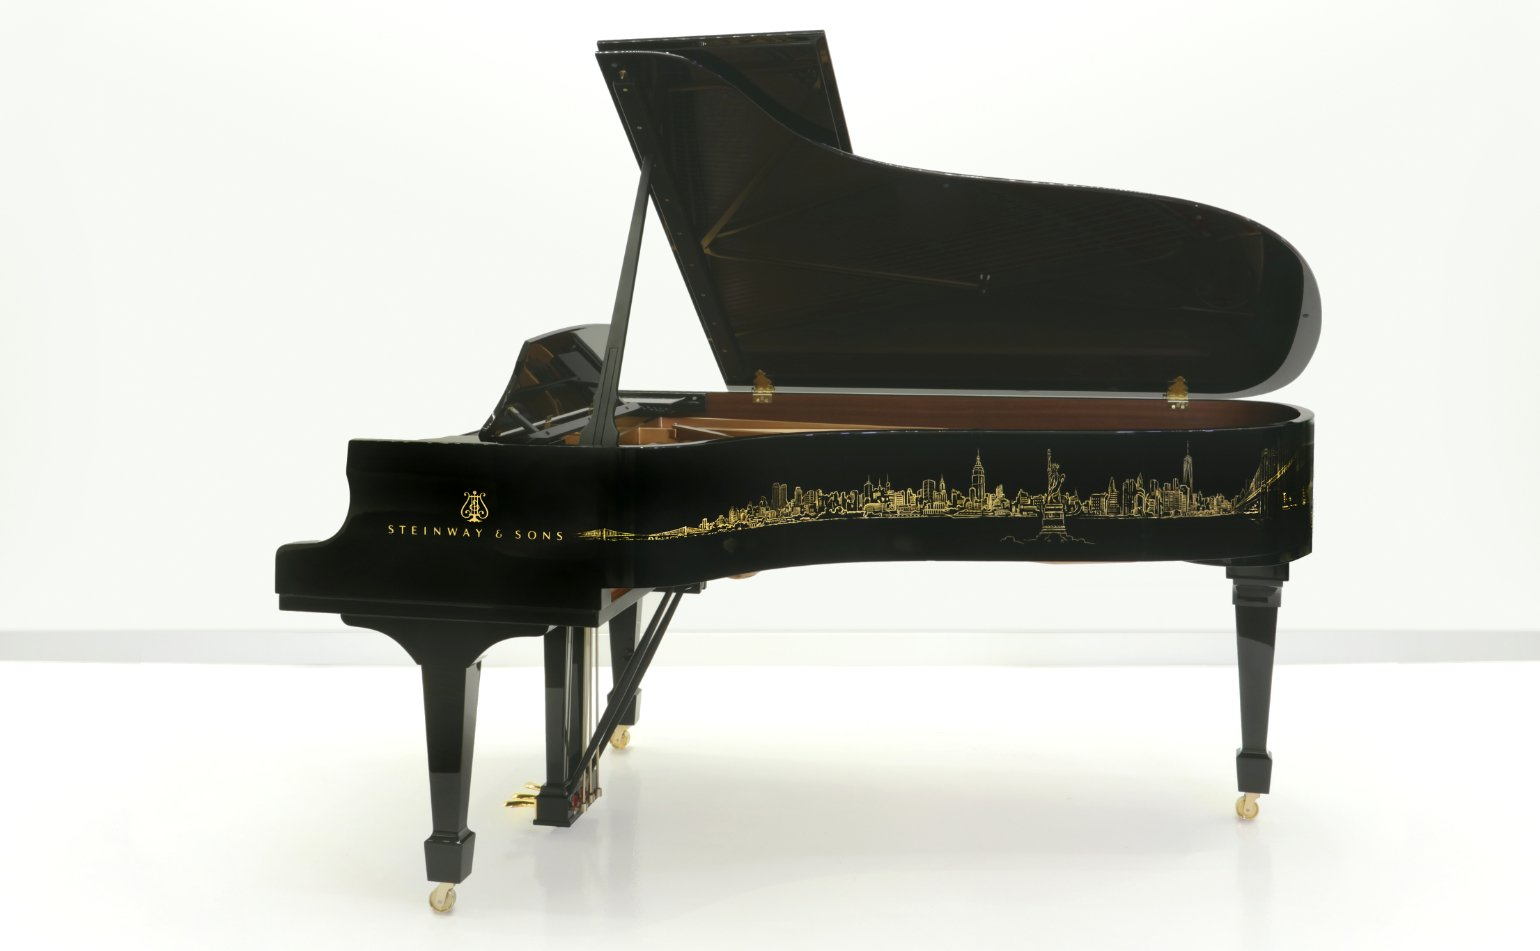 side view of the Steinway Skyline grand piano